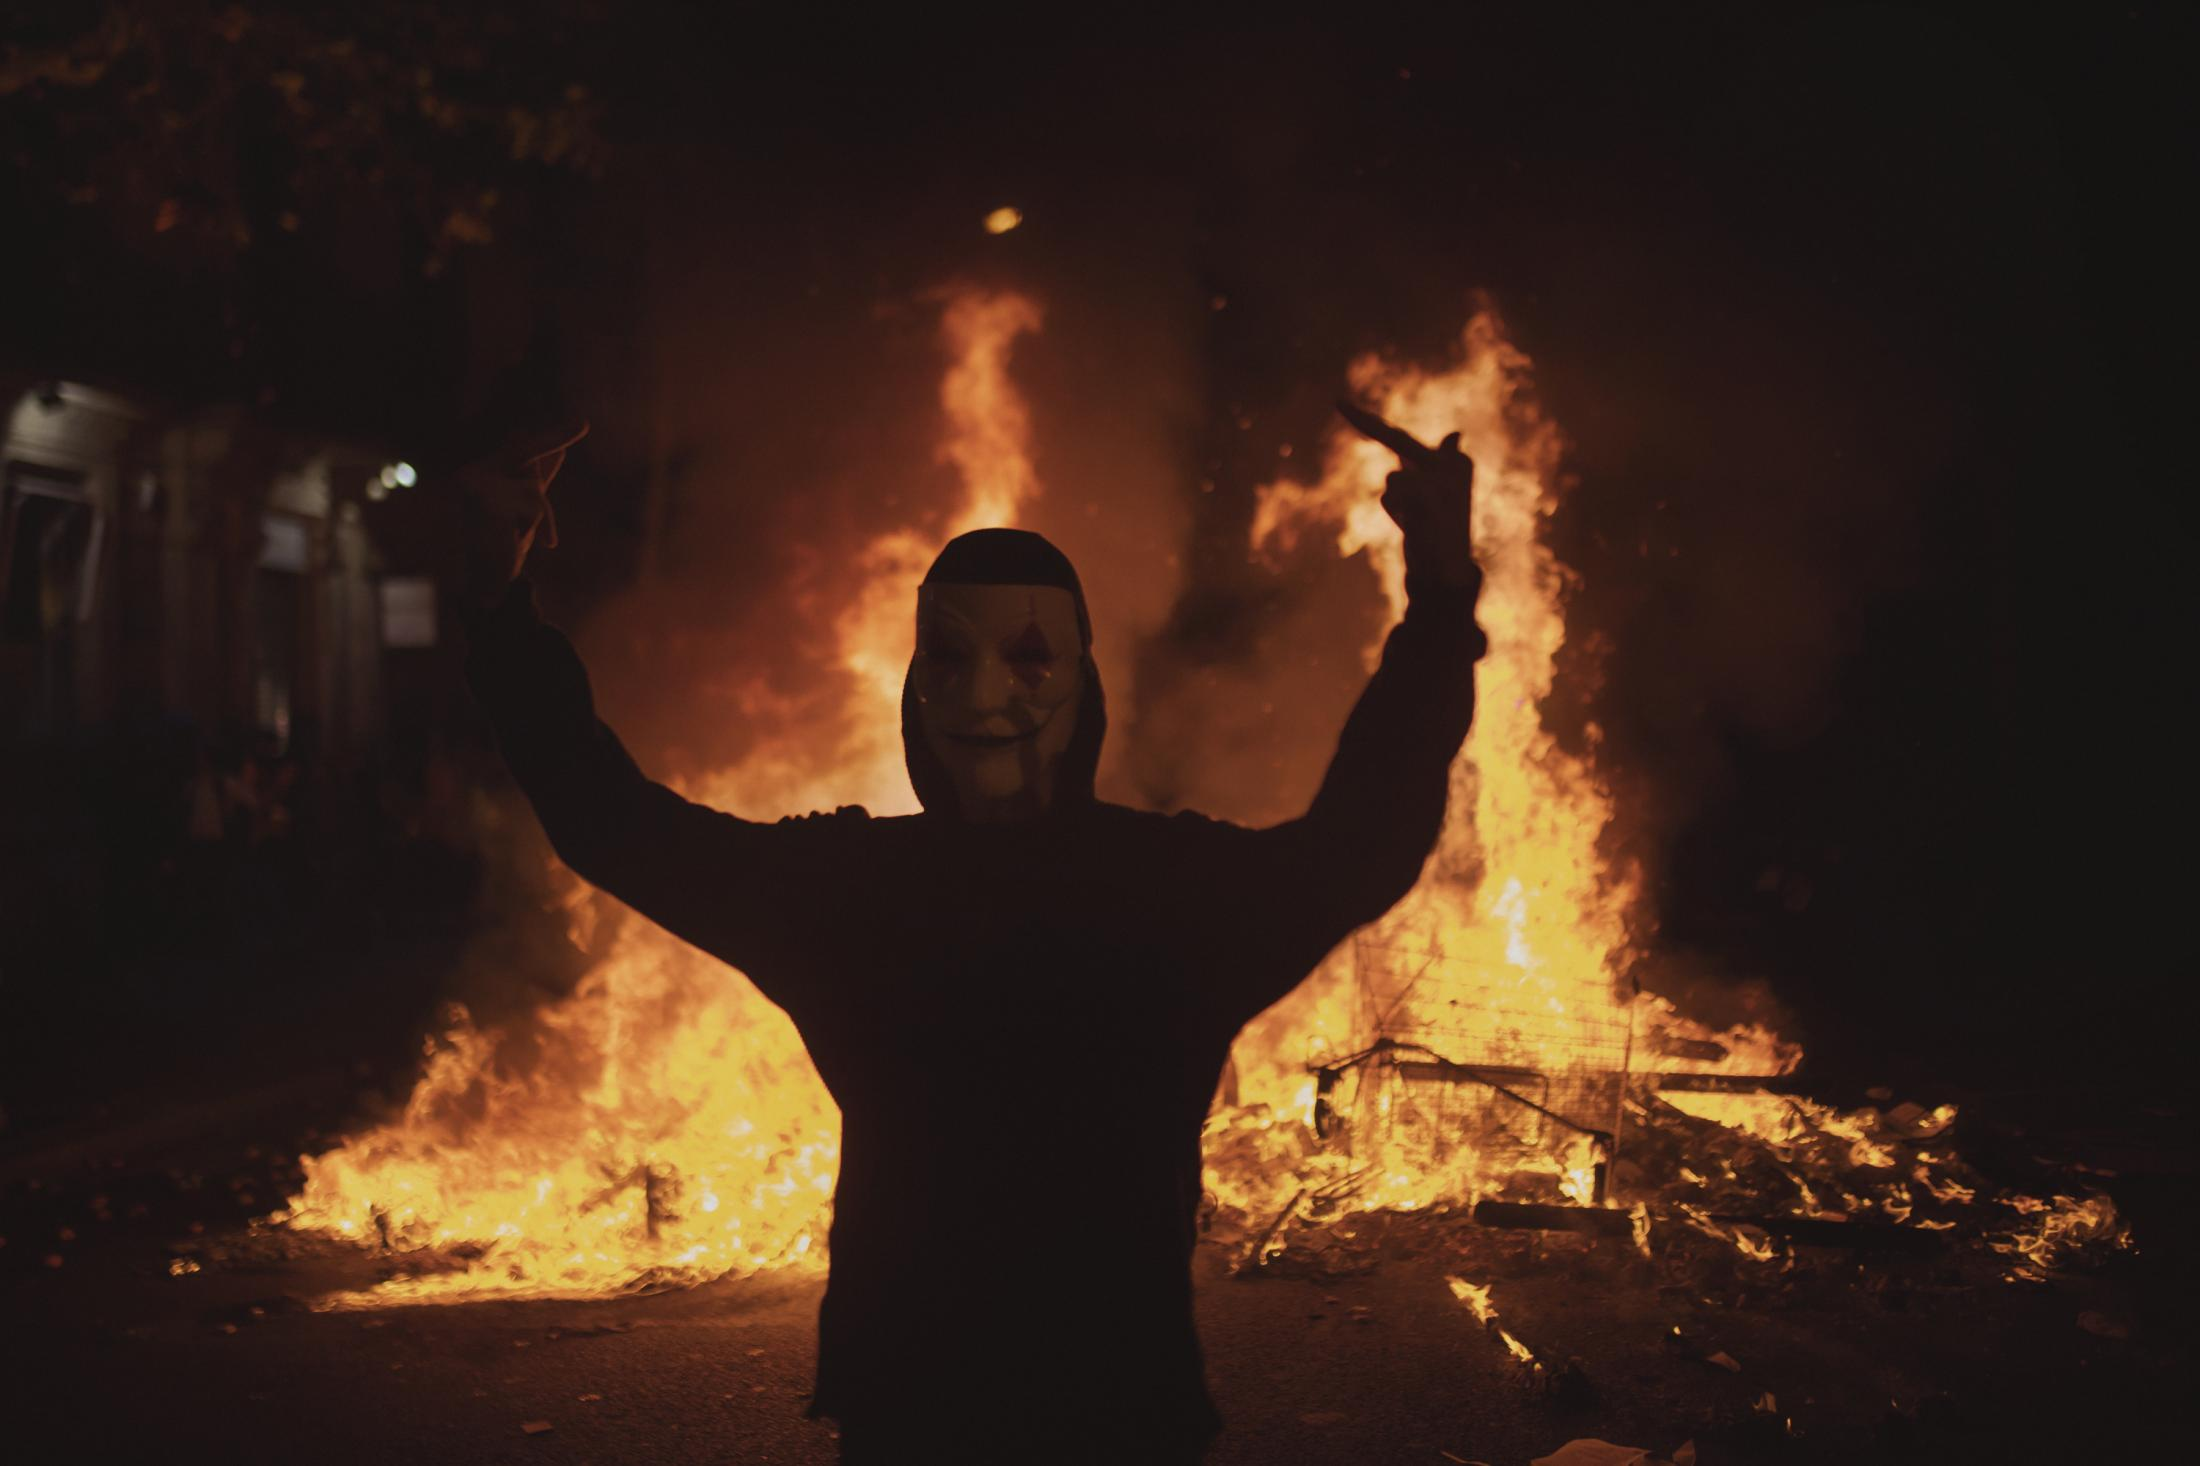 """October 17, 2019. Barcelona, Spain. A masked youth shows his middle finger as a barricade burns behind him. Others masked youths start to hurling cobblestones and flammable bottles, building barricades and setting dozens of bonfires with large garbage bins. The neighbors have taken fire extinguishers from the corridors of their building to try to put out the flames. The streets of Catalonia started to be a place of battle for independence. Businessmen warn about the risk of """"destruction"""" of the Catalan economy. The economic sector shows its concern about the impact on business activity and asks for dialogue to resolve the conflict. In their Twitter account, the police (Mossos) have explained that people are barricading in different streets of Barcelona and asked the citizens not to approach the red areas. They have also reported that protesters have made at least five pyrotechnic launches against the helicopter that flies over Barcelona to help control the protest"""